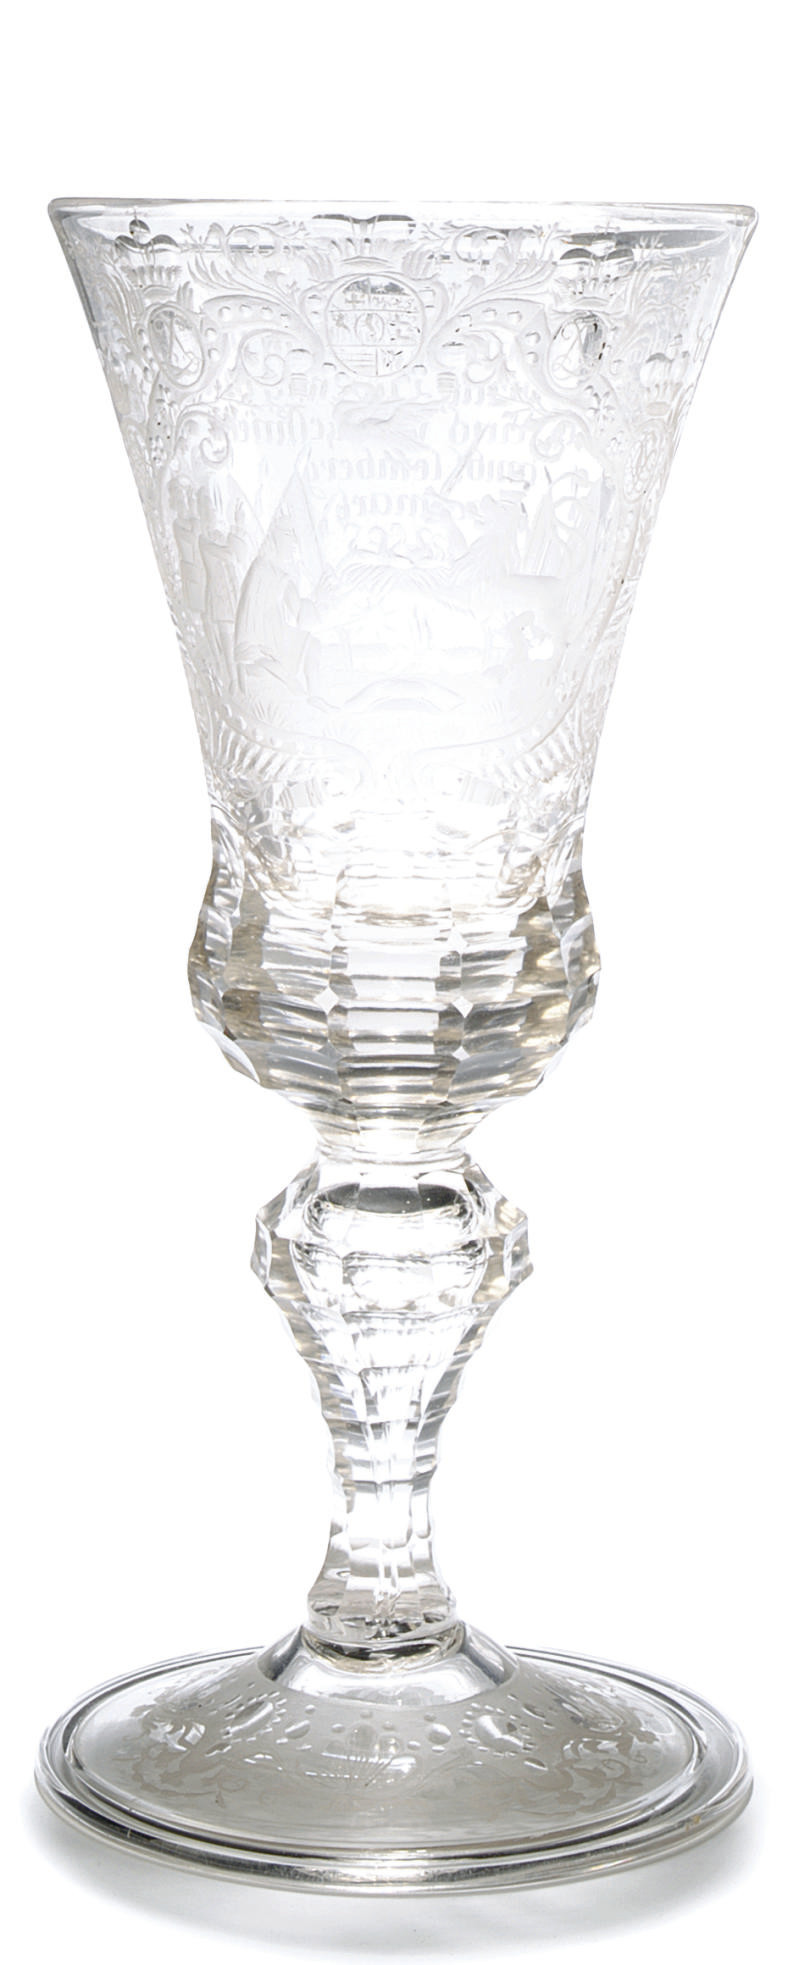 A GERMAN ENGRAVED GLASS DATED